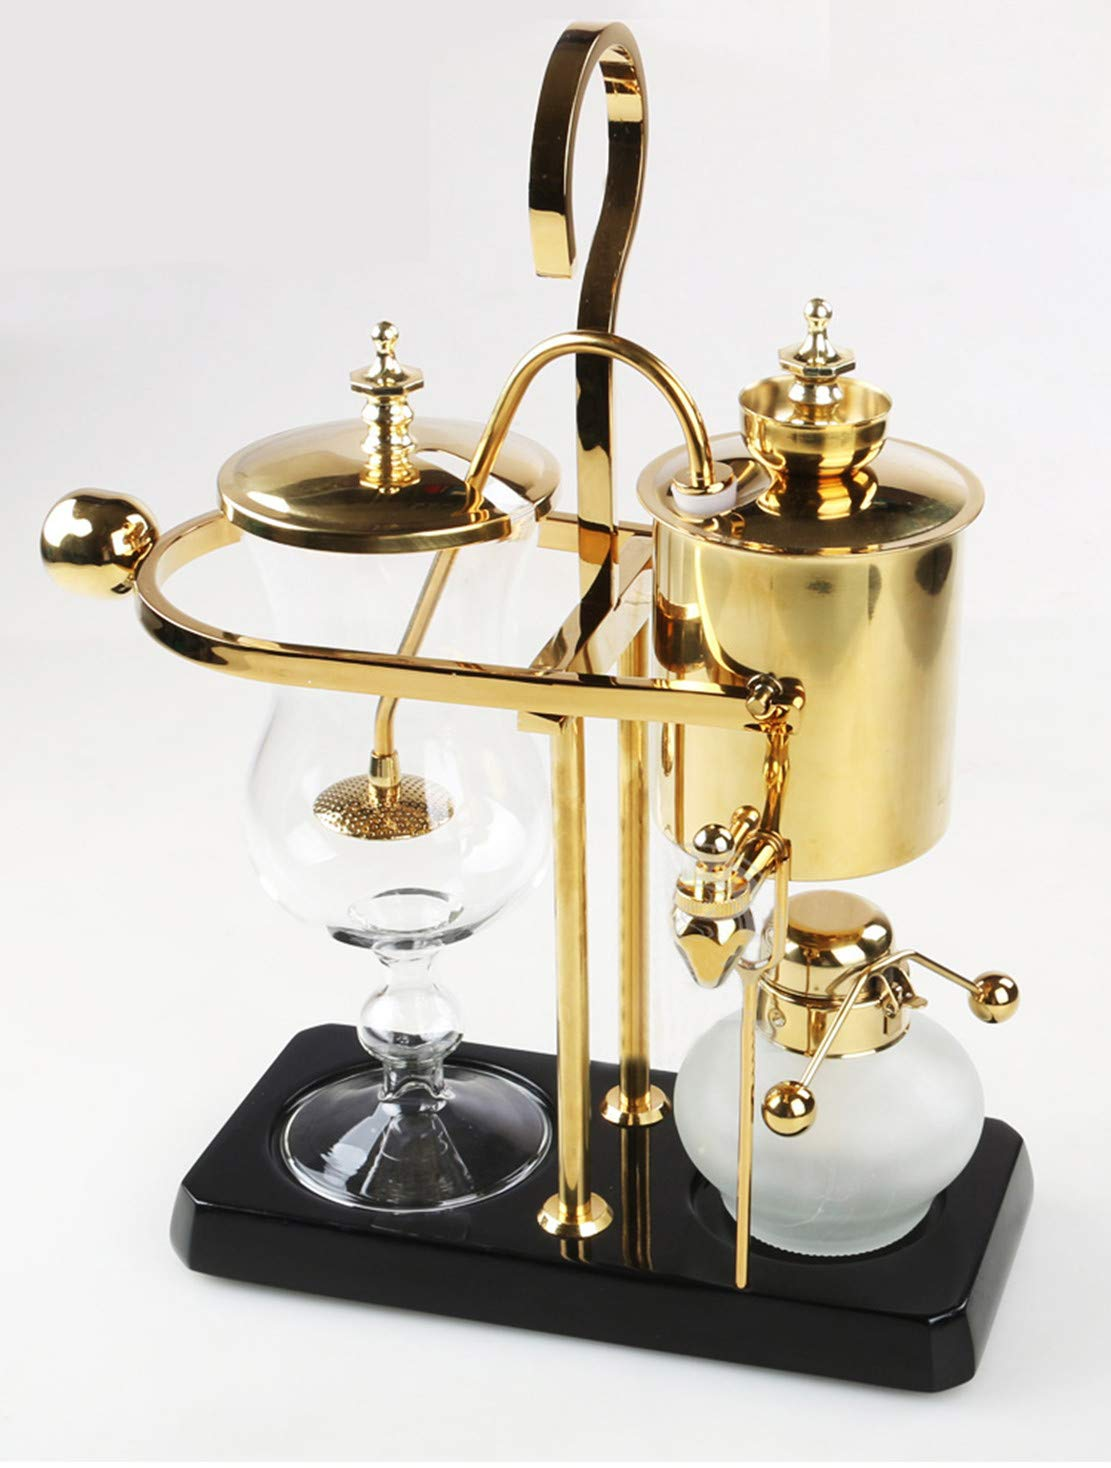 T-king 4-5 People Alcohol Siphon Coffee Stove Manual Coffee Maker Coffee Pot Gold by T-king